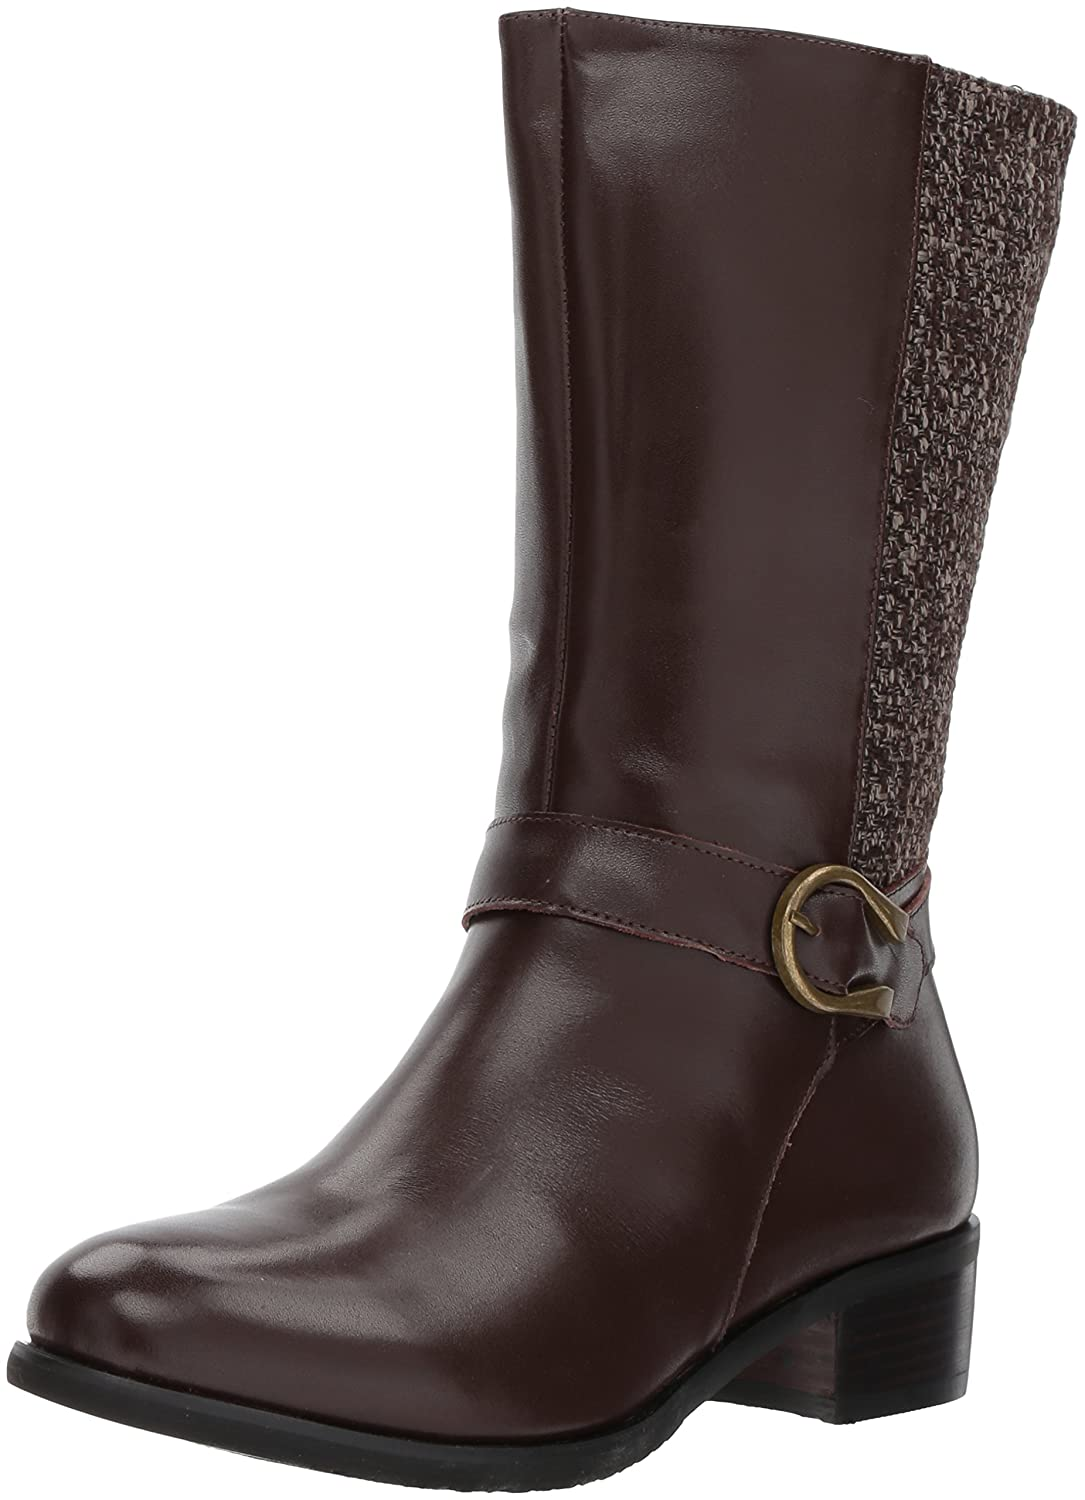 Propet Women's Tessa Riding Boot B01MRRZ6N6 7.5 W US|Brown